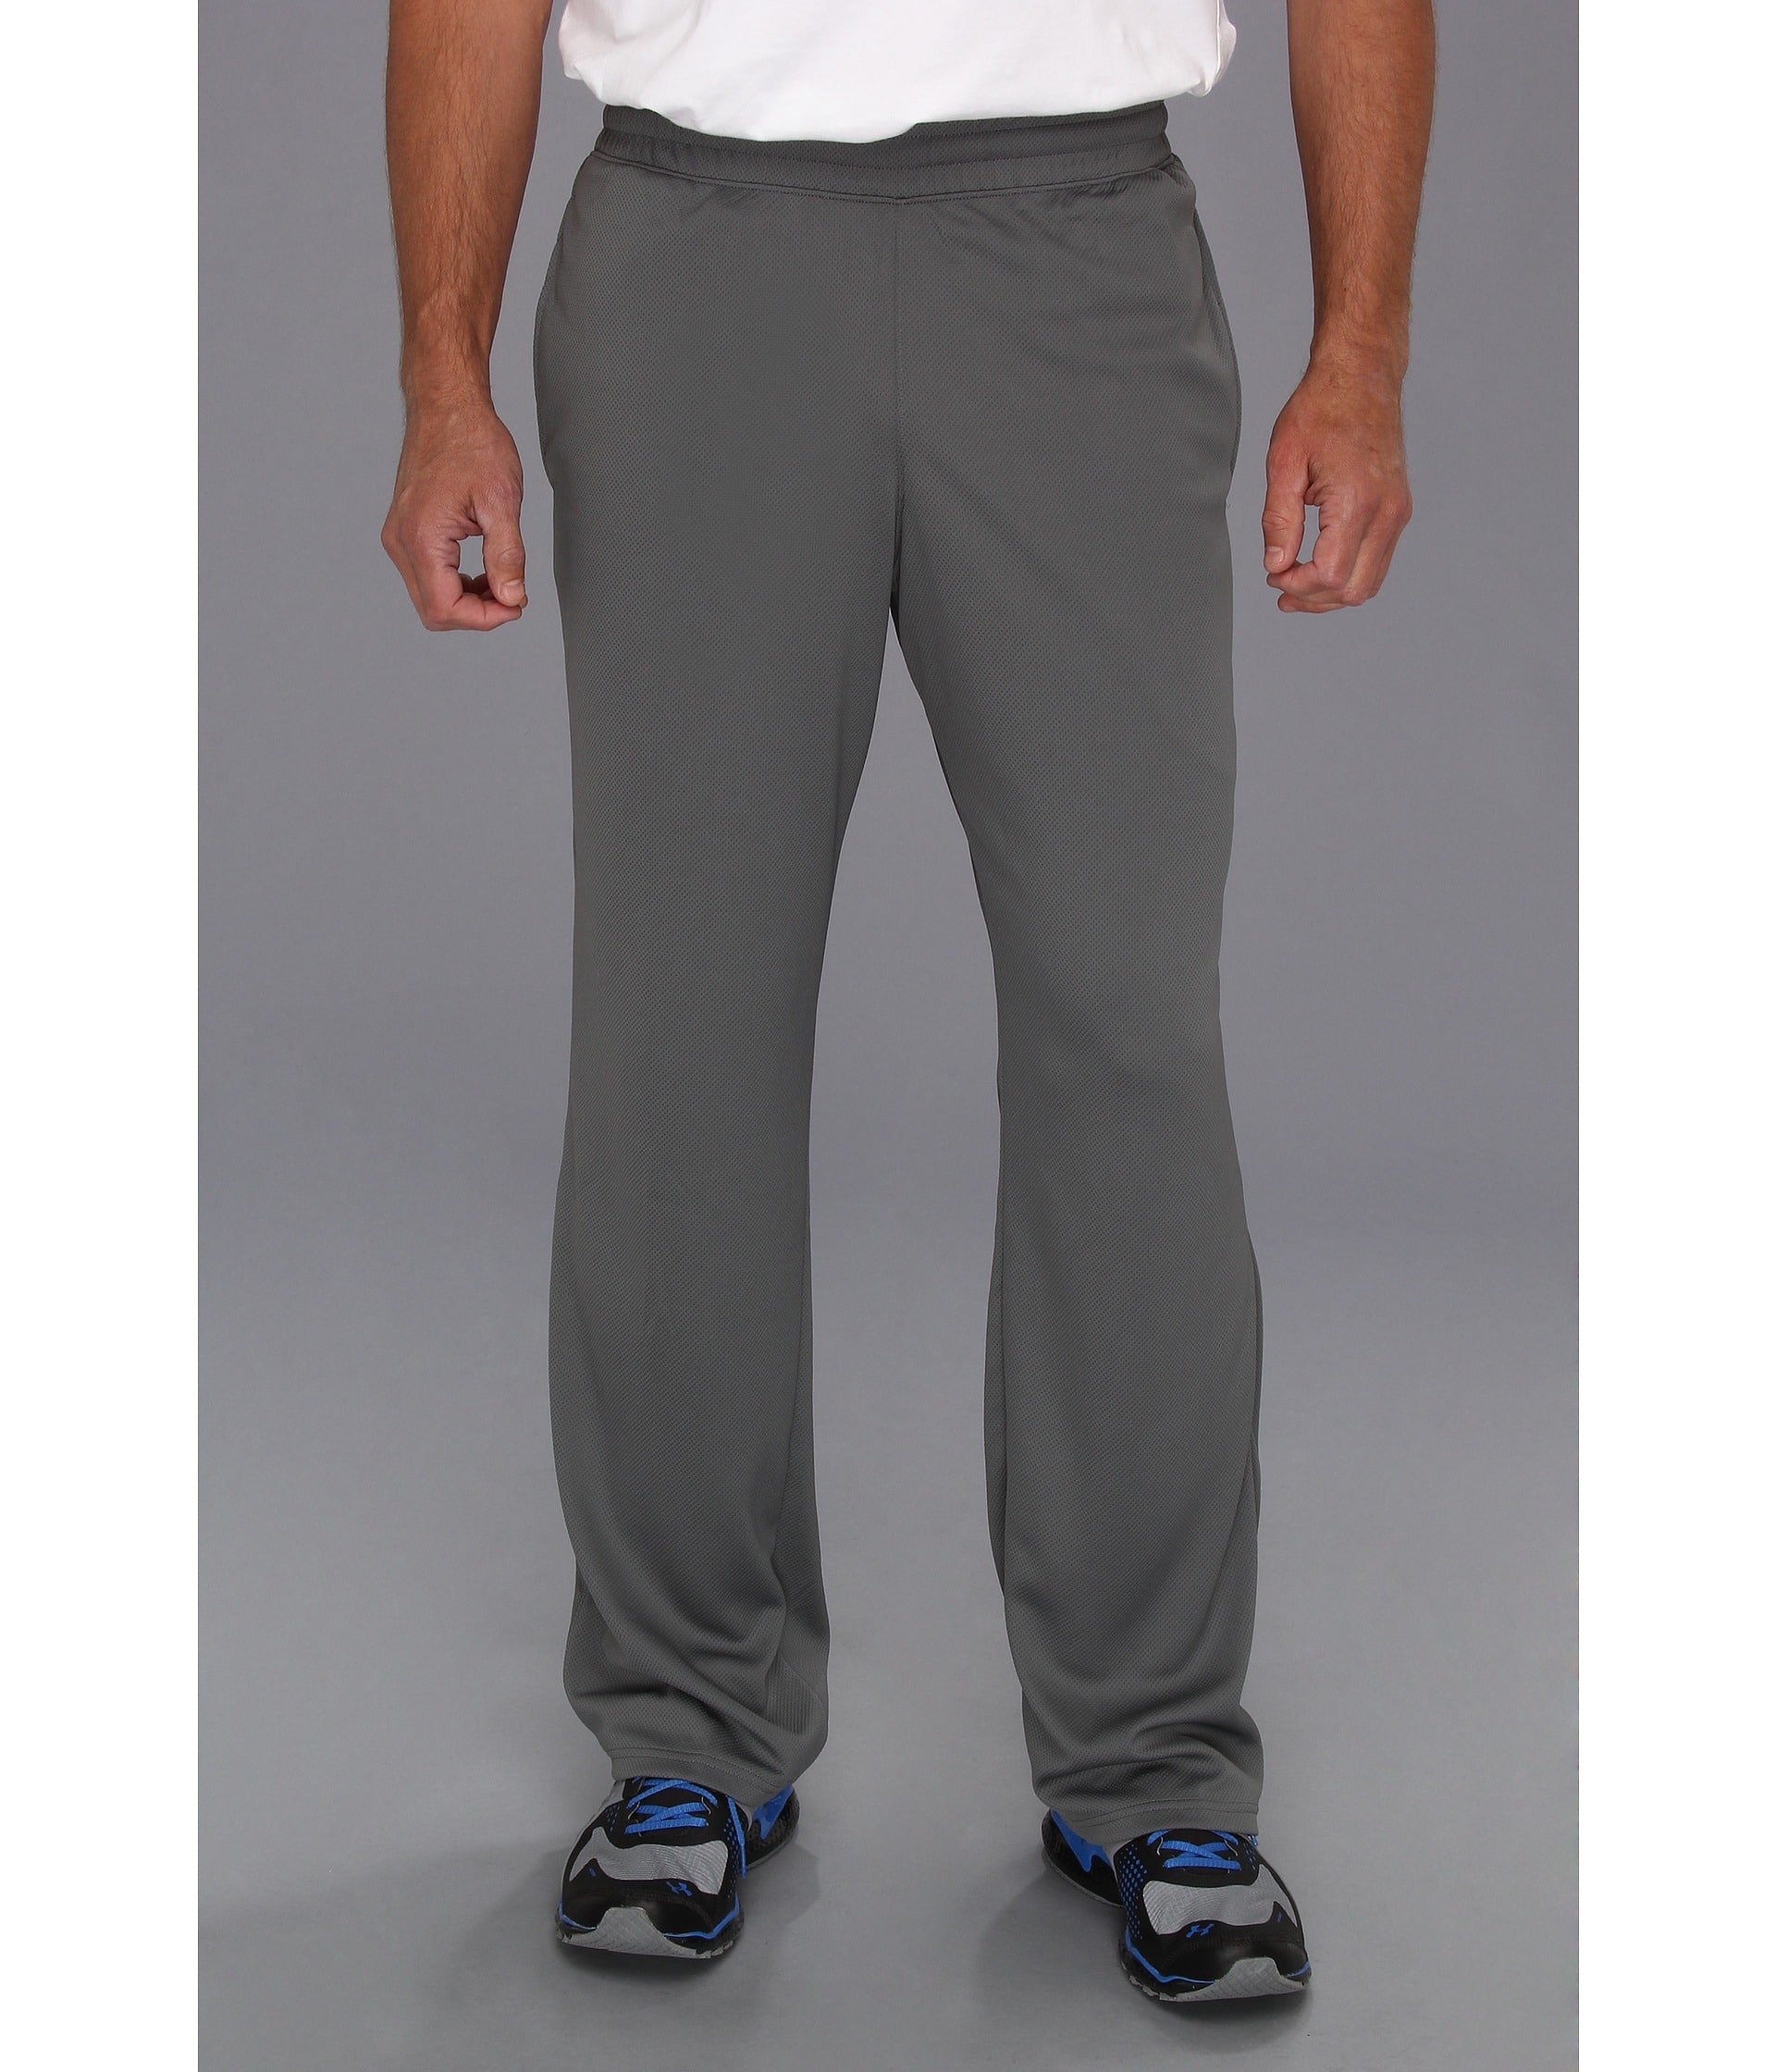 2-Pairs Men's Under Armour UA Reflex Moisture Wicking Pants  $29 + Free Shipping